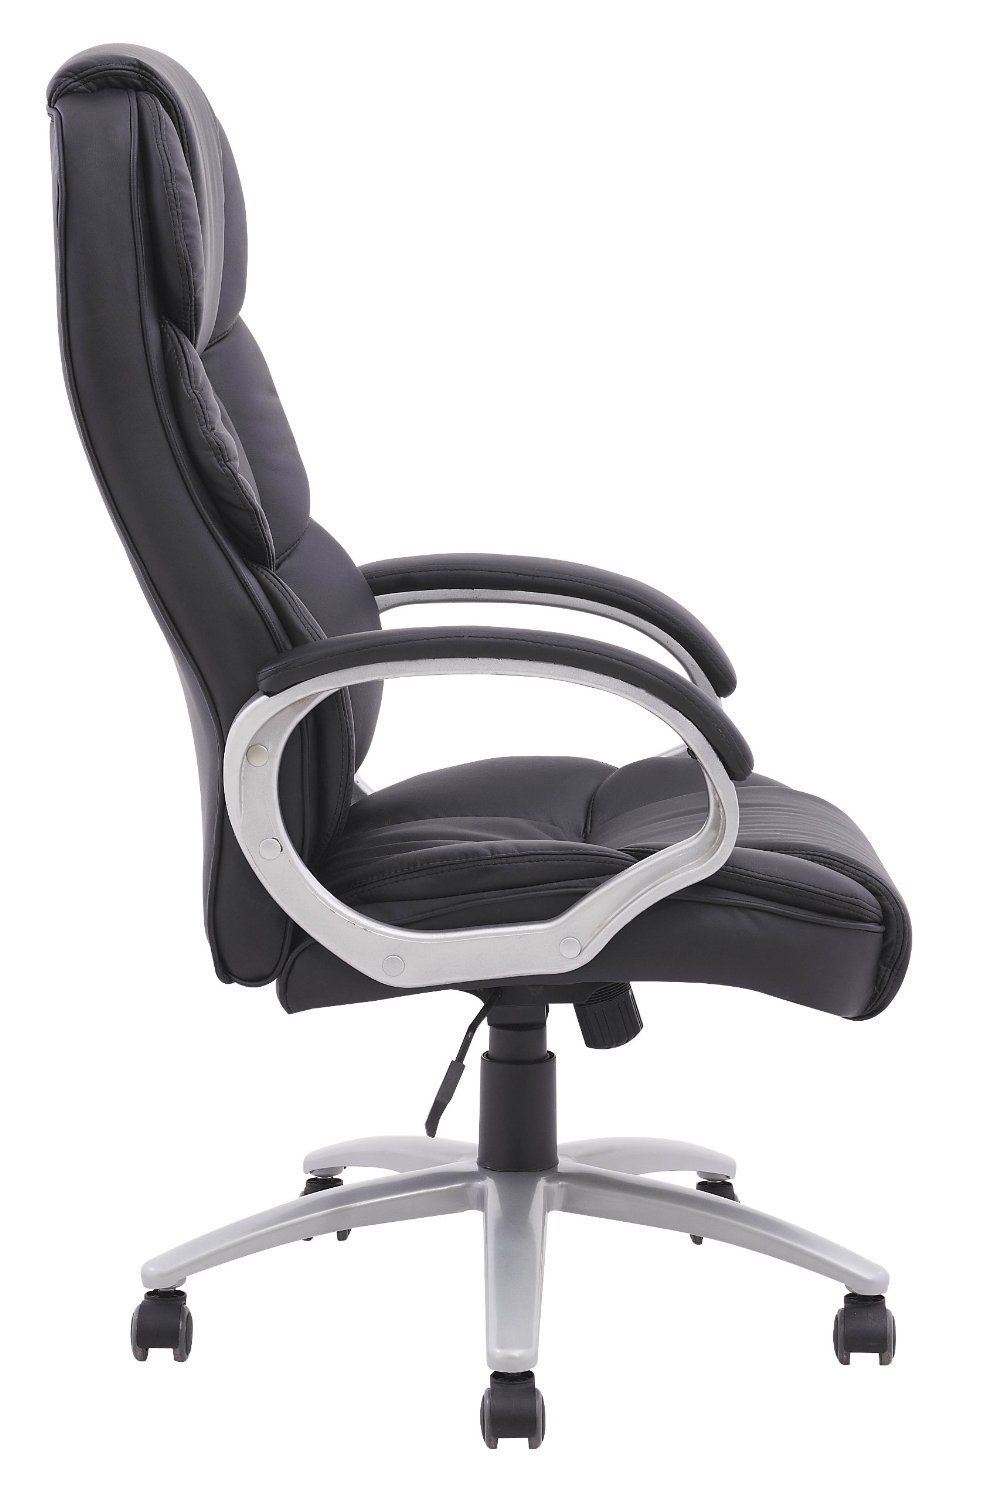 high back executive ergonomic office chair reviews 1